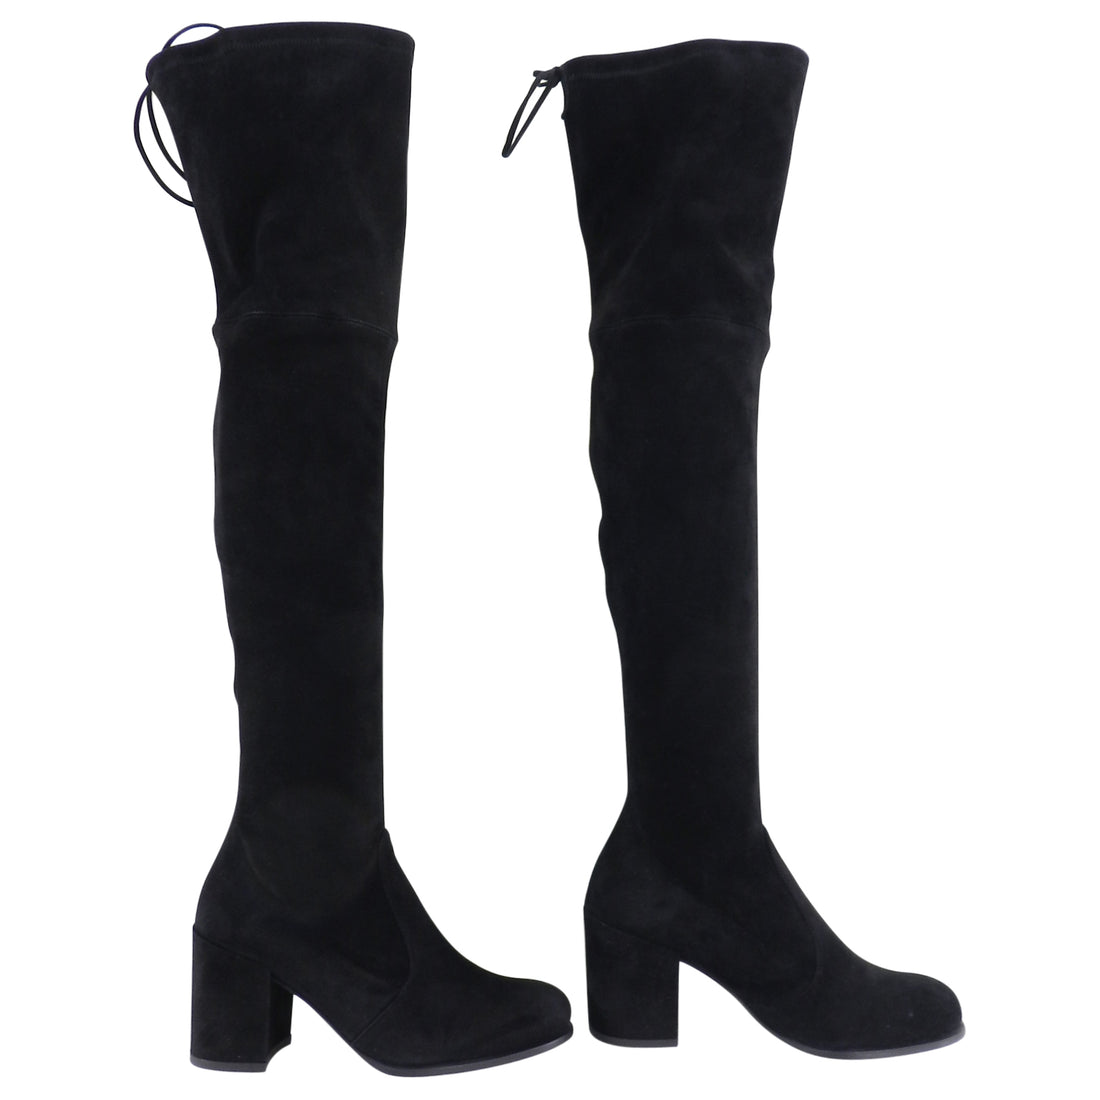 Stuart Weitzman Black Stretch Over the Knee Tieland Boots - 38.5